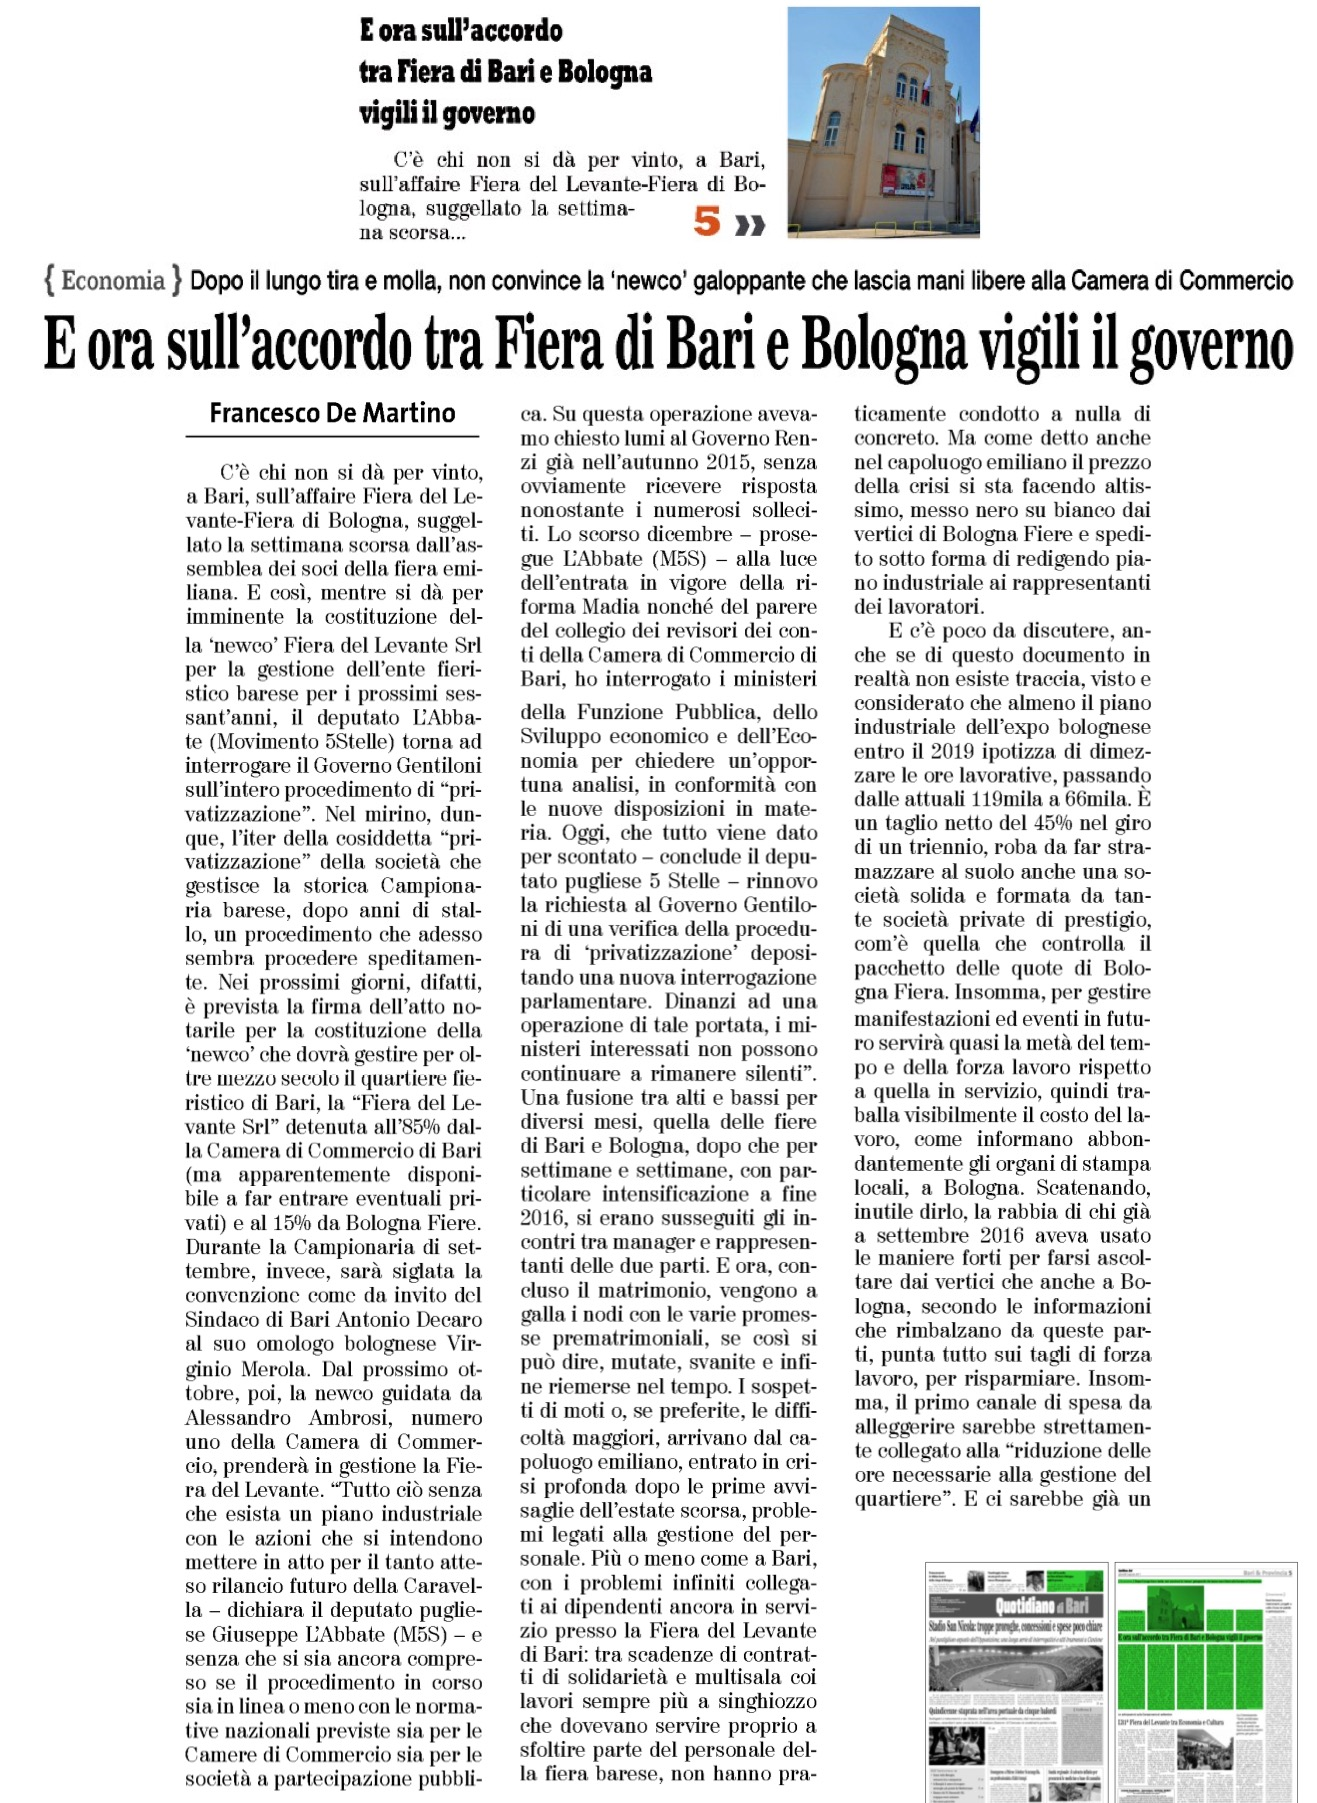 Il Quotidiano di Bari - 03.08.2017